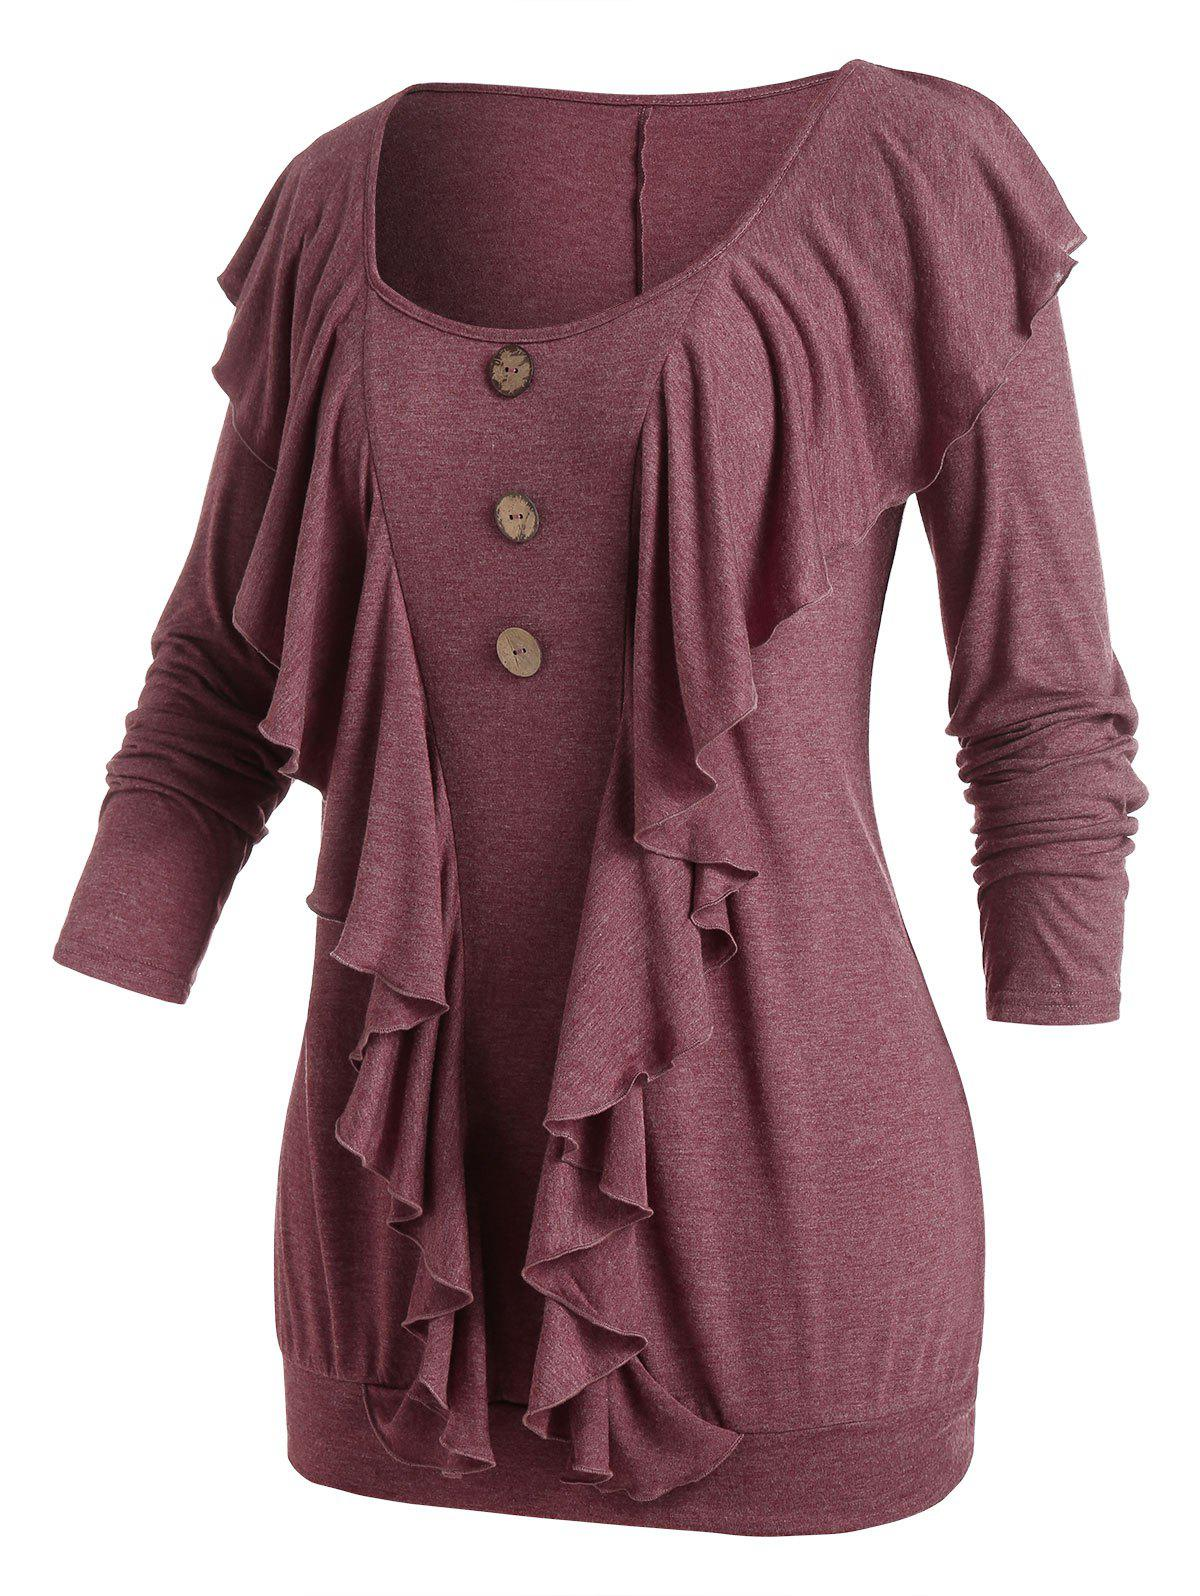 Plus Size Flounce Buttons Tunic T-shirt - RED WINE 5X